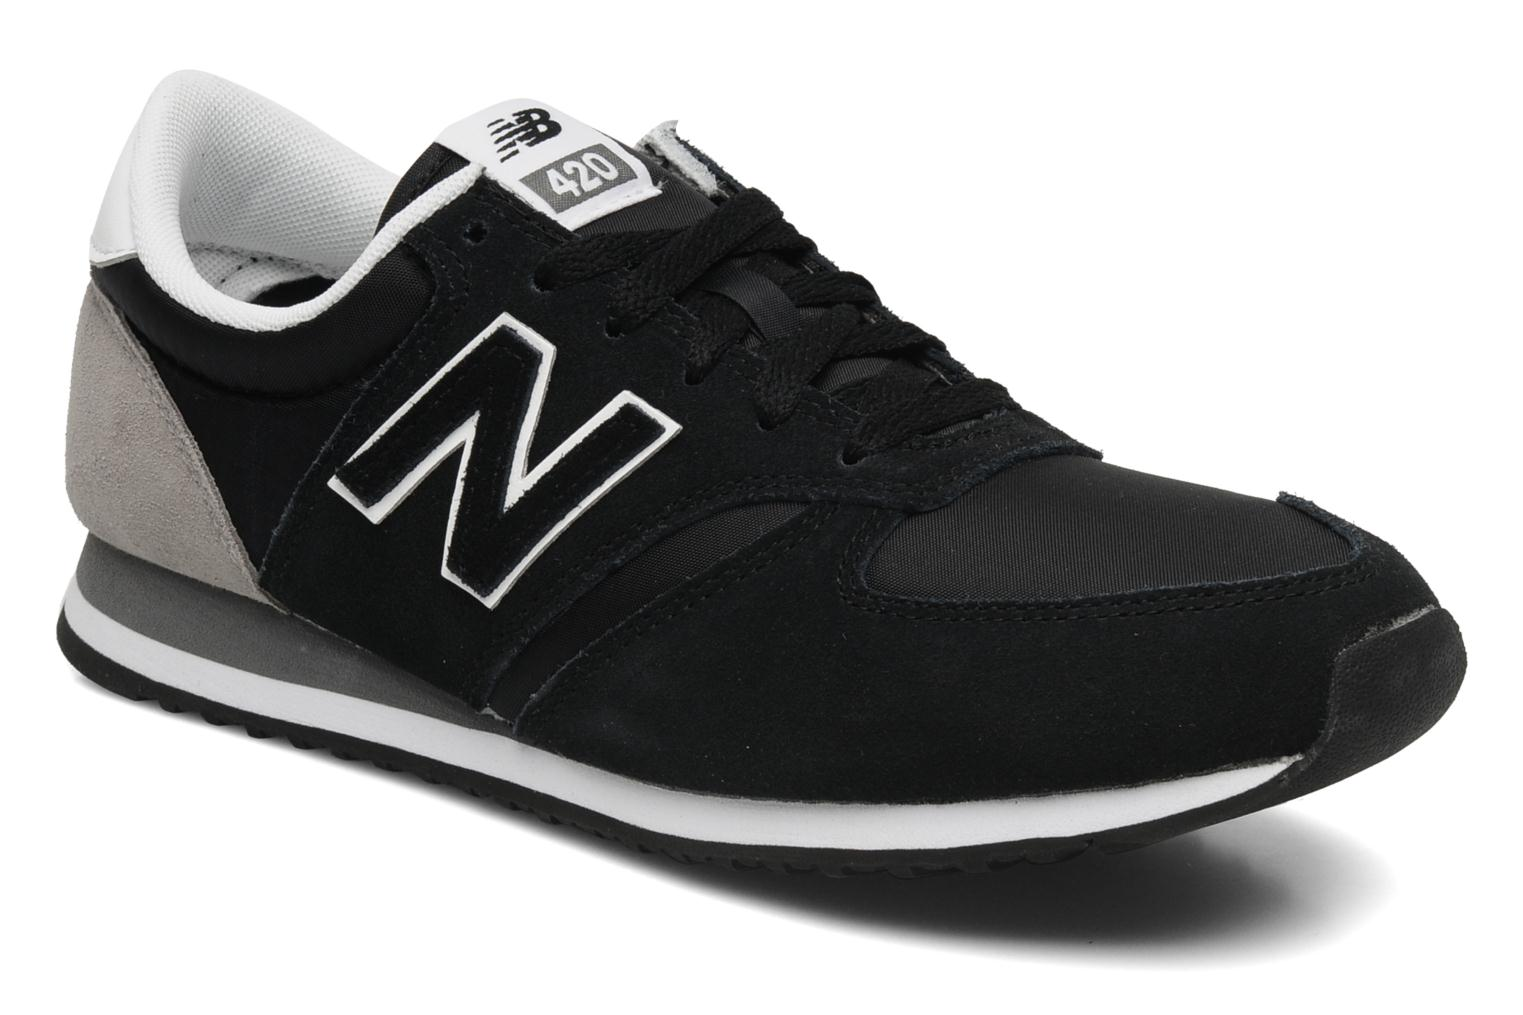 new balance - 420 - baskets - noir/gris